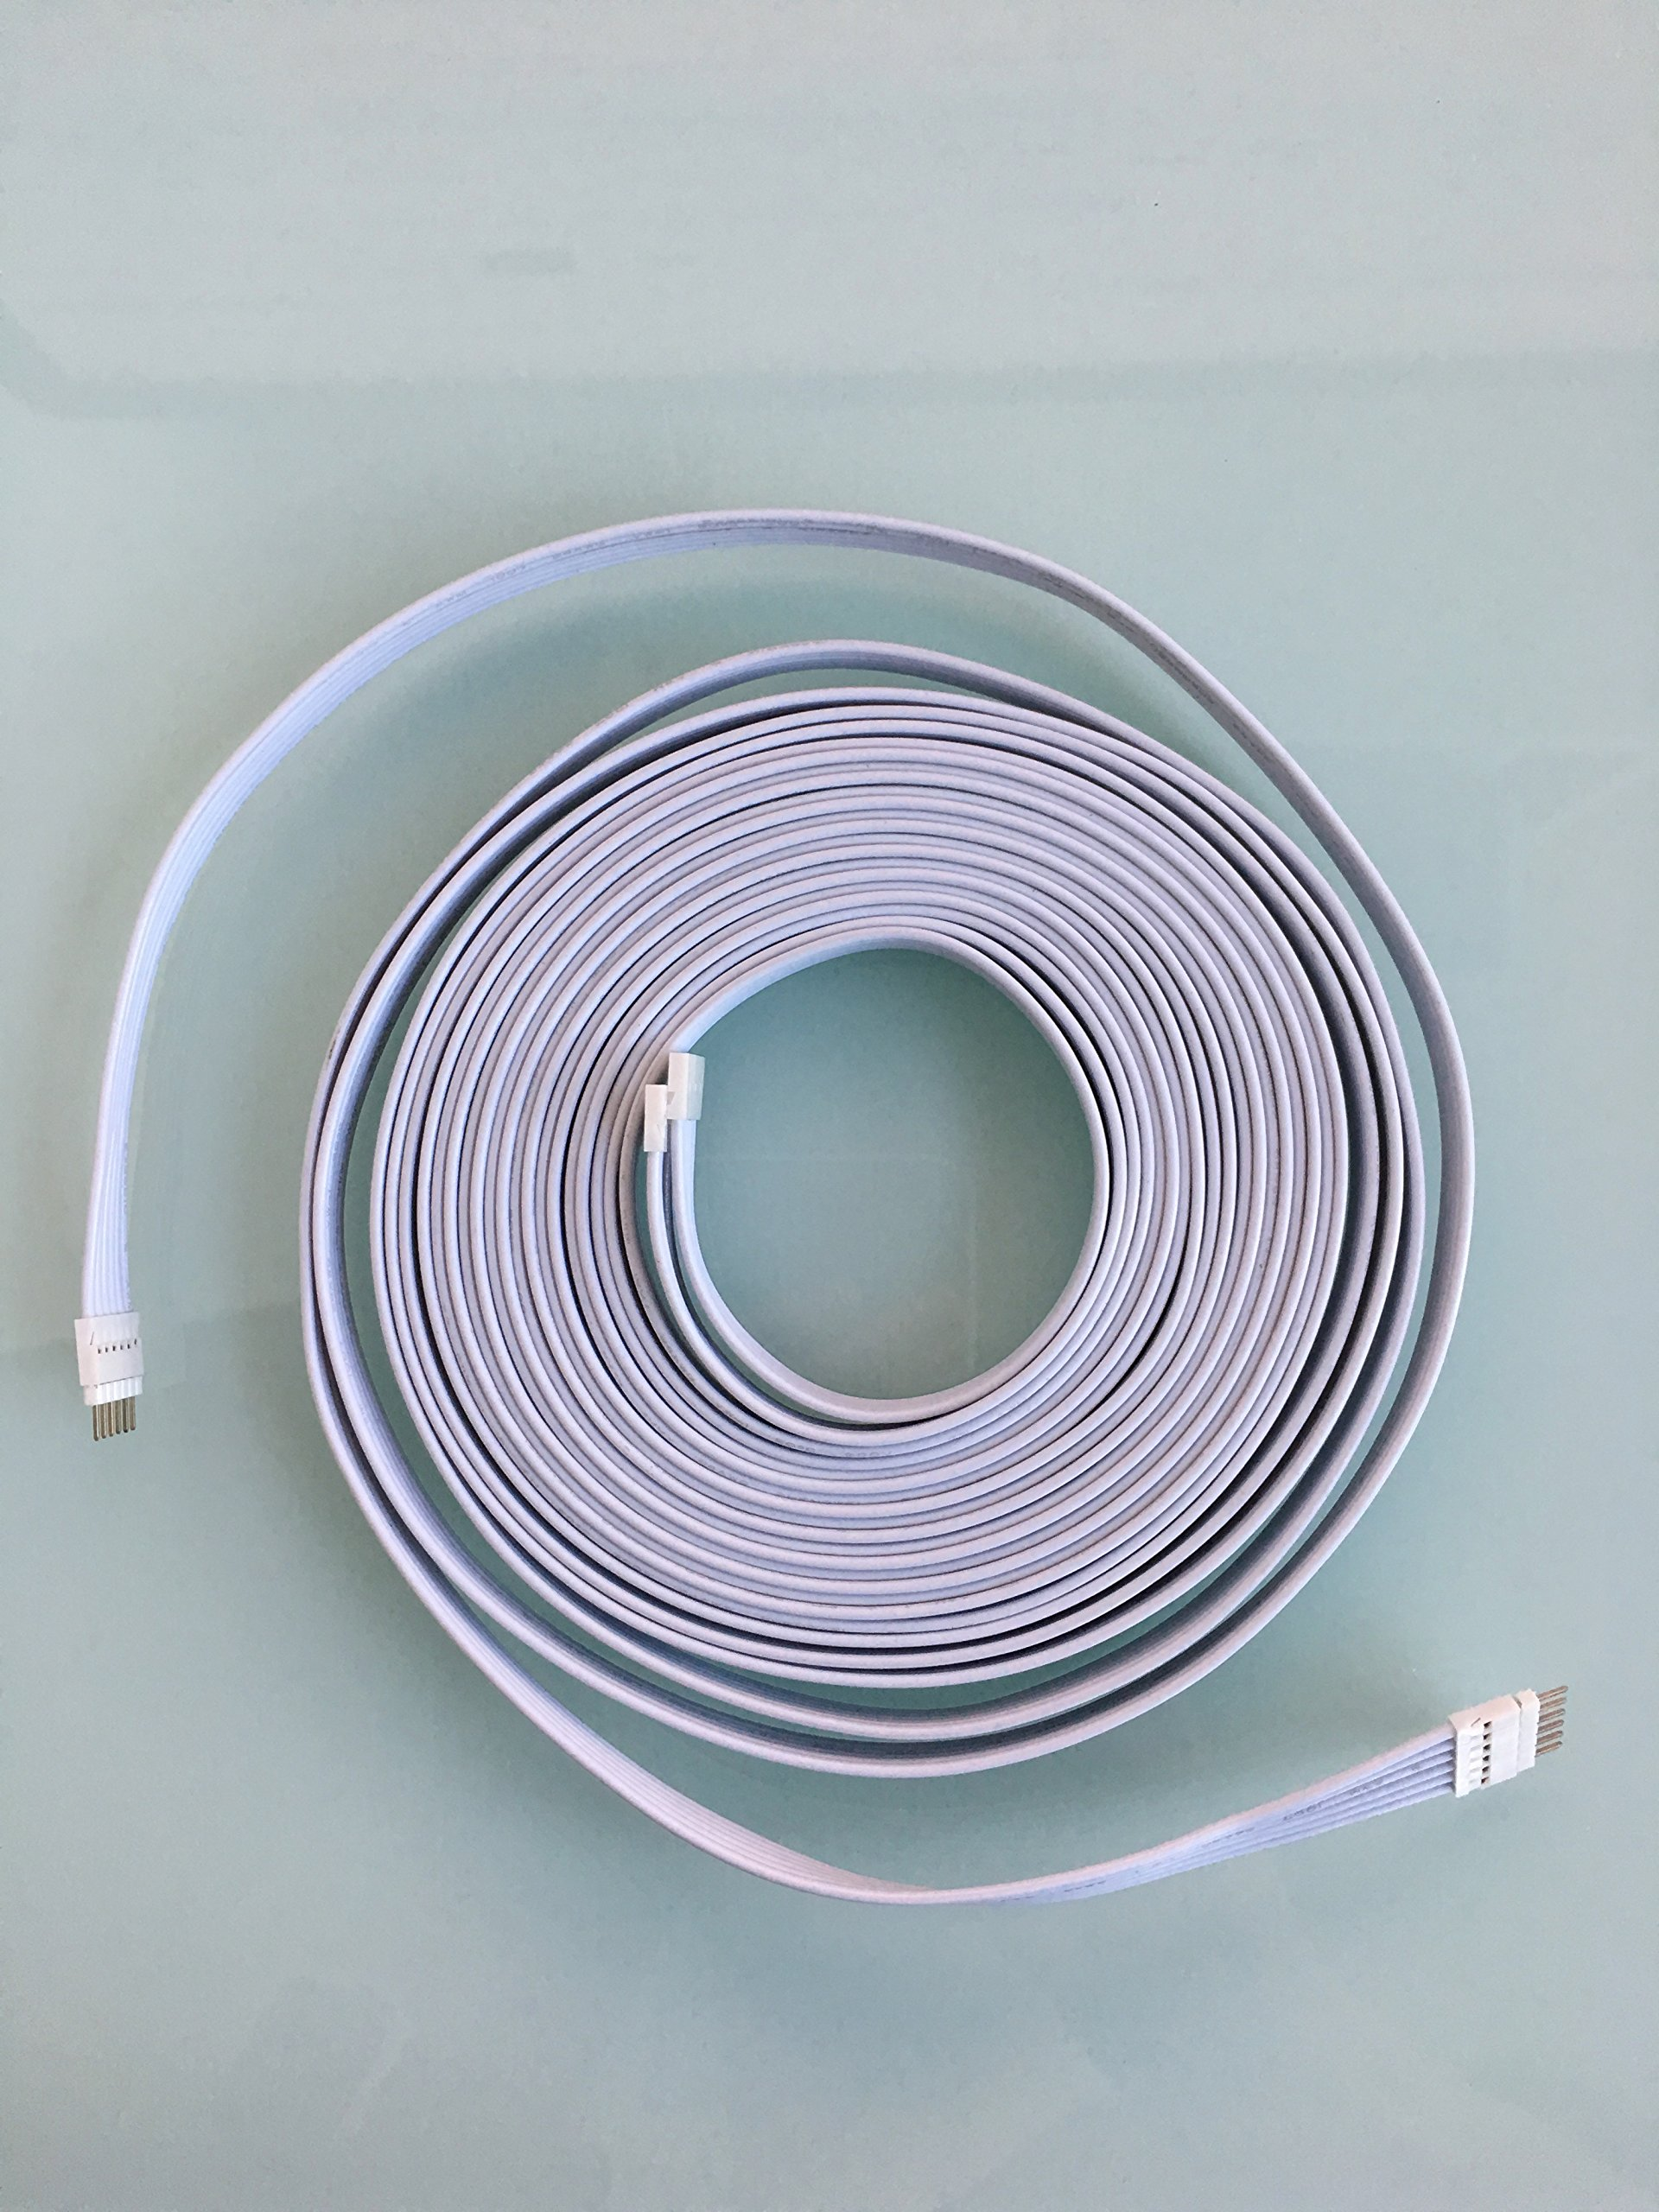 extension cable for philips hue lightstrip plus 6 pin led strip light cord ebay. Black Bedroom Furniture Sets. Home Design Ideas